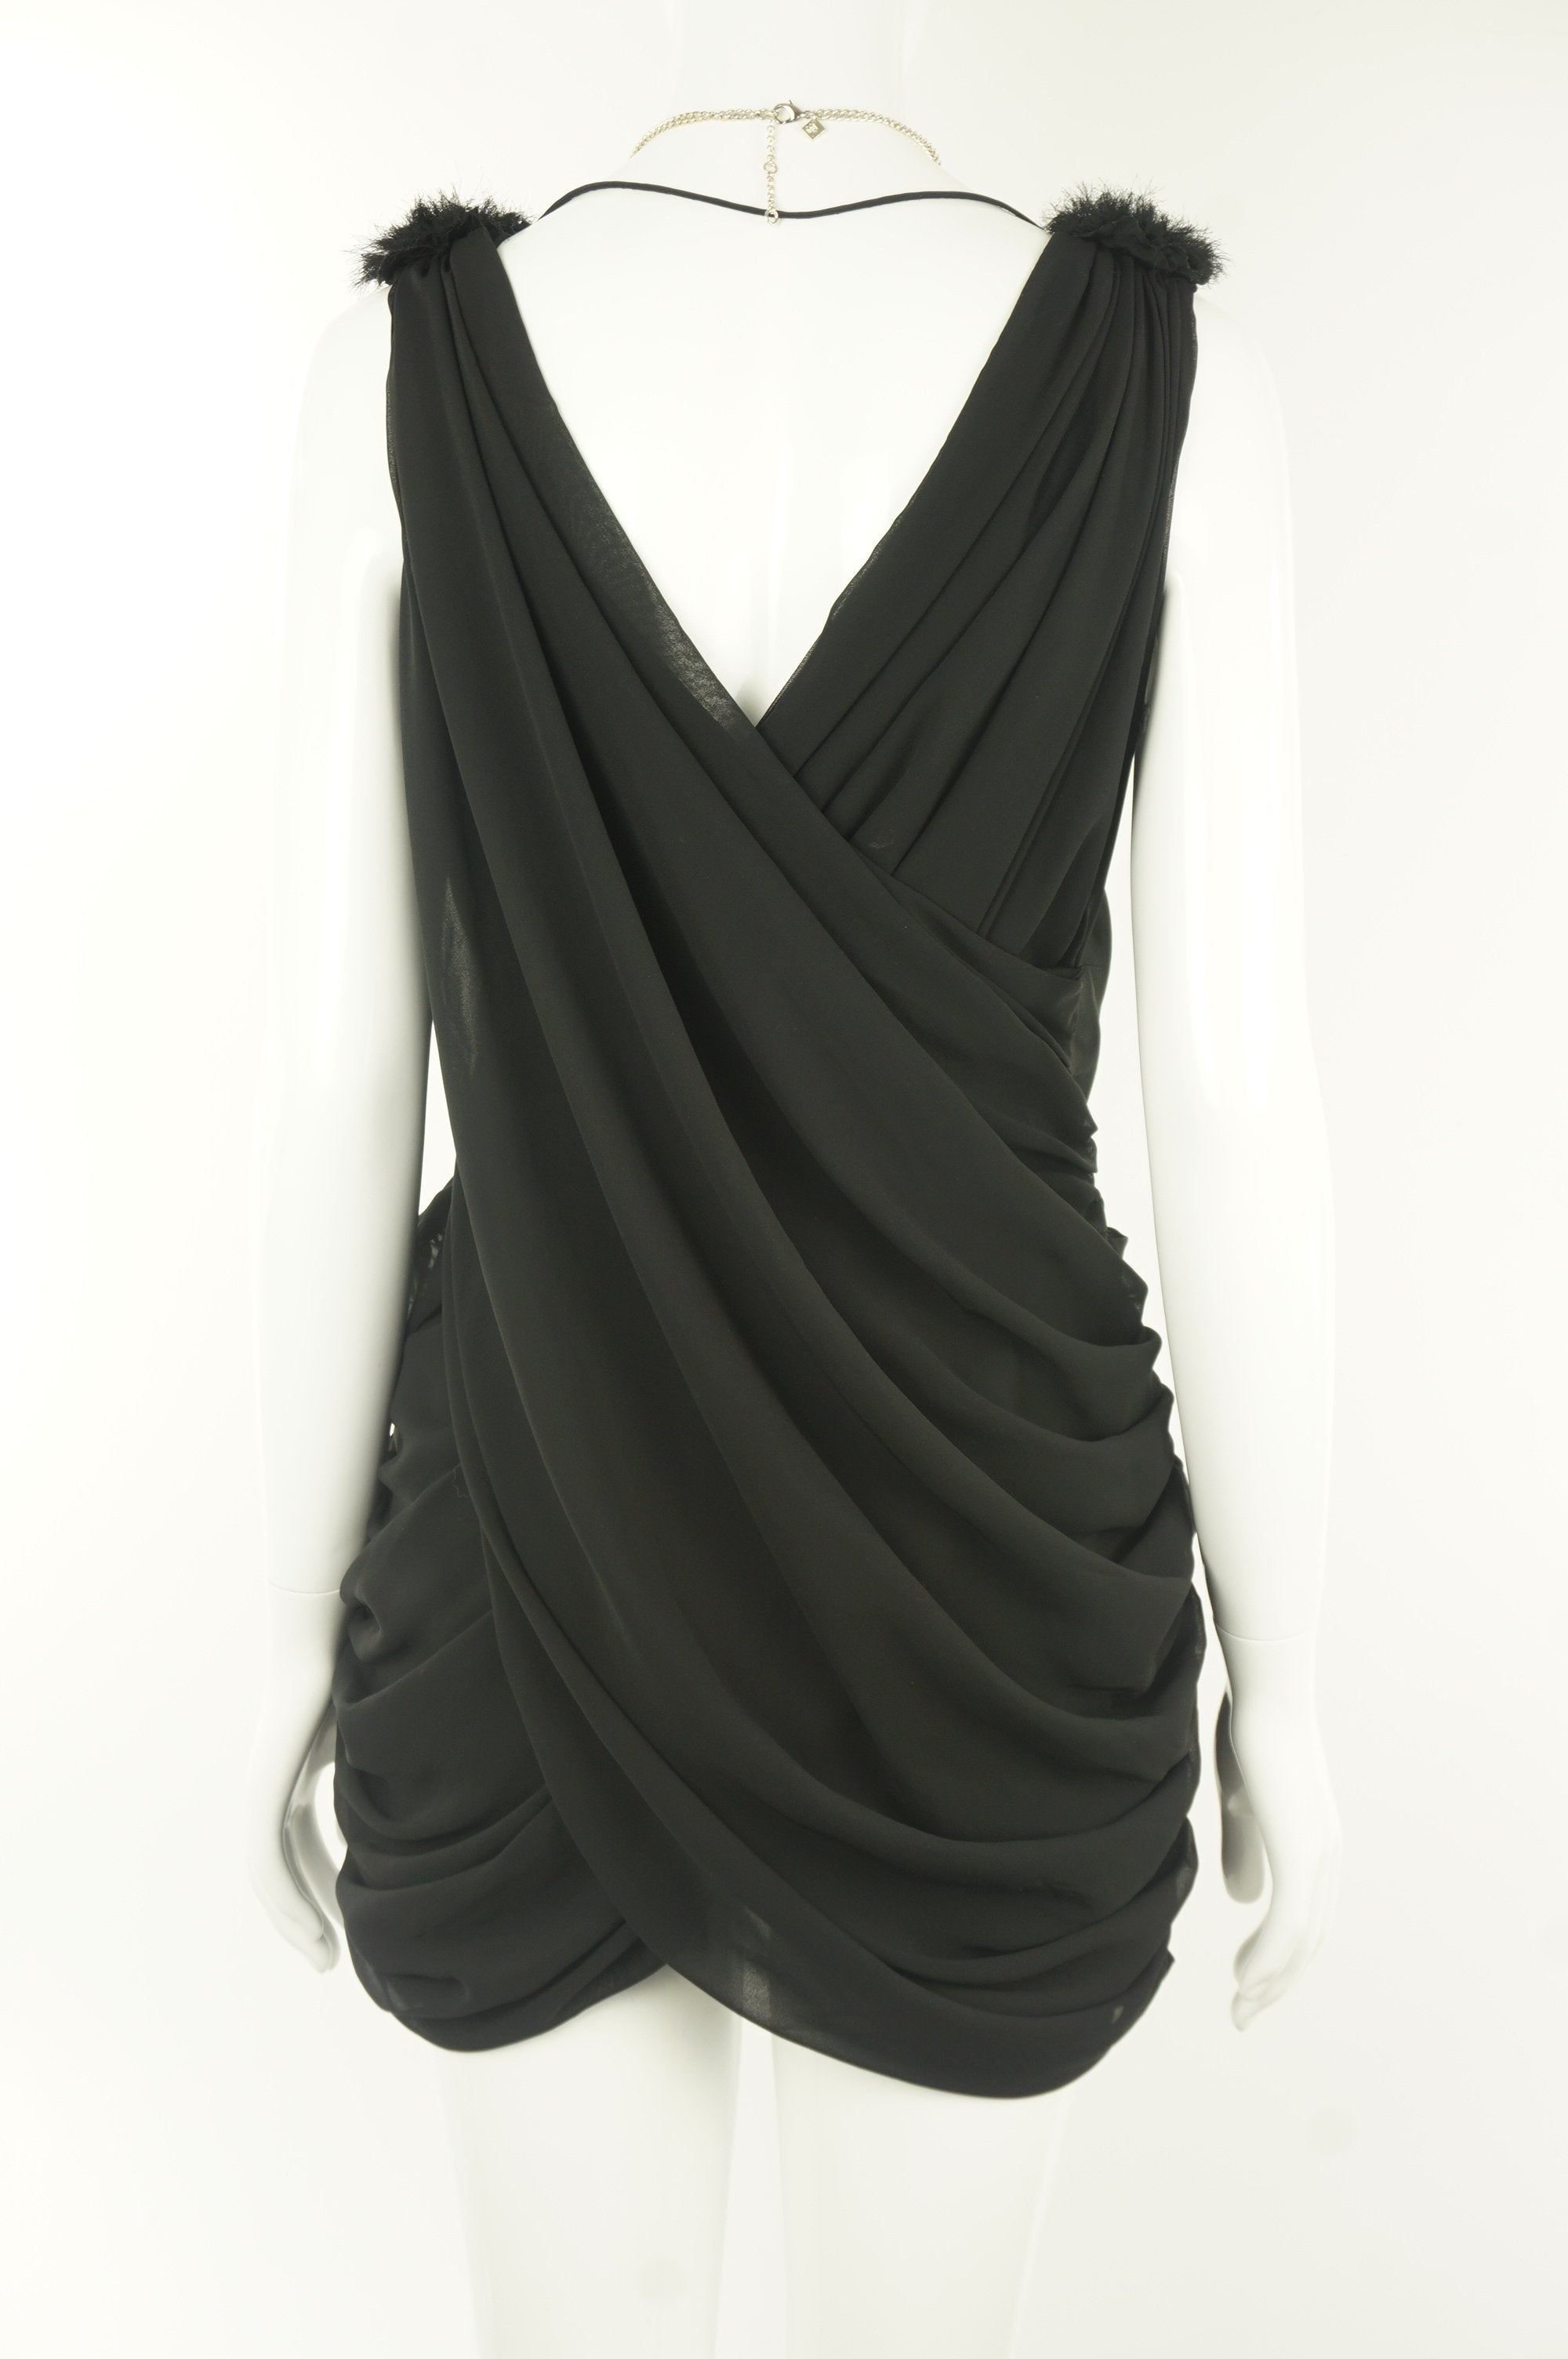 Sievergute Crossed Deep V-Neck Cocktail Dress , Sexy crossed deep v-neck cocktail black dress that makes head turn at any night parties, Black, Soft Flowy Fabric, women's Dresses & Skirts, women's Black Dresses & Skirts, Sievergute women's Dresses & Skirts, Sexy women's cocktail black dress, crossed deep v-neck open back dress, women's party short dress